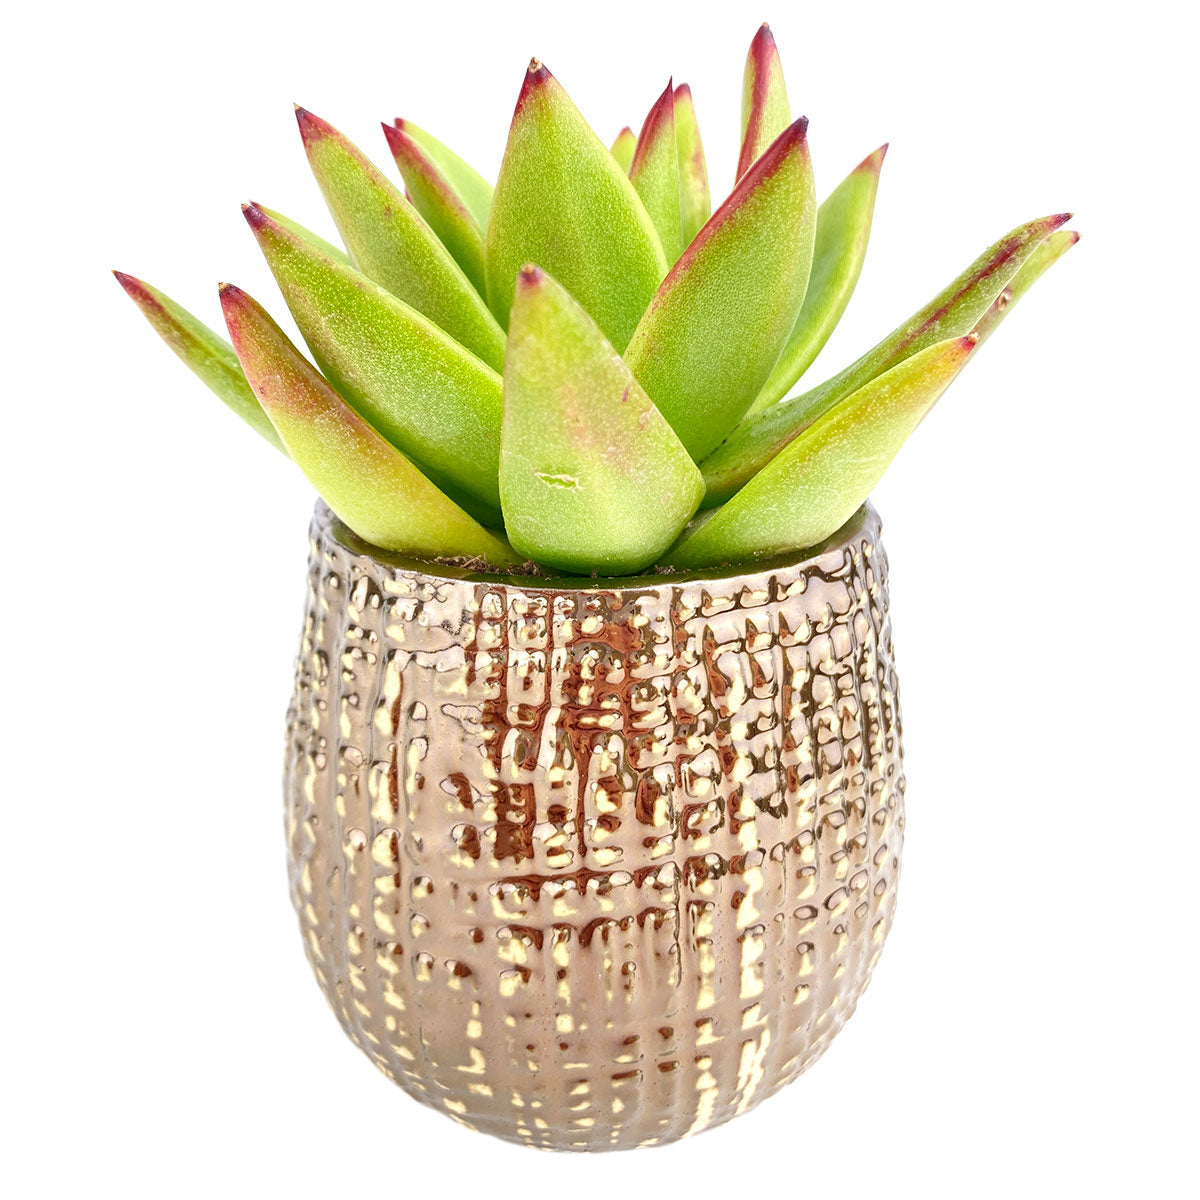 Pot for sale, Mini pot for succulent, Succulent pot decor ideas, Bronze Gold Pot, Flower pot for sale, glass pots for planting, succulent gift for holiday